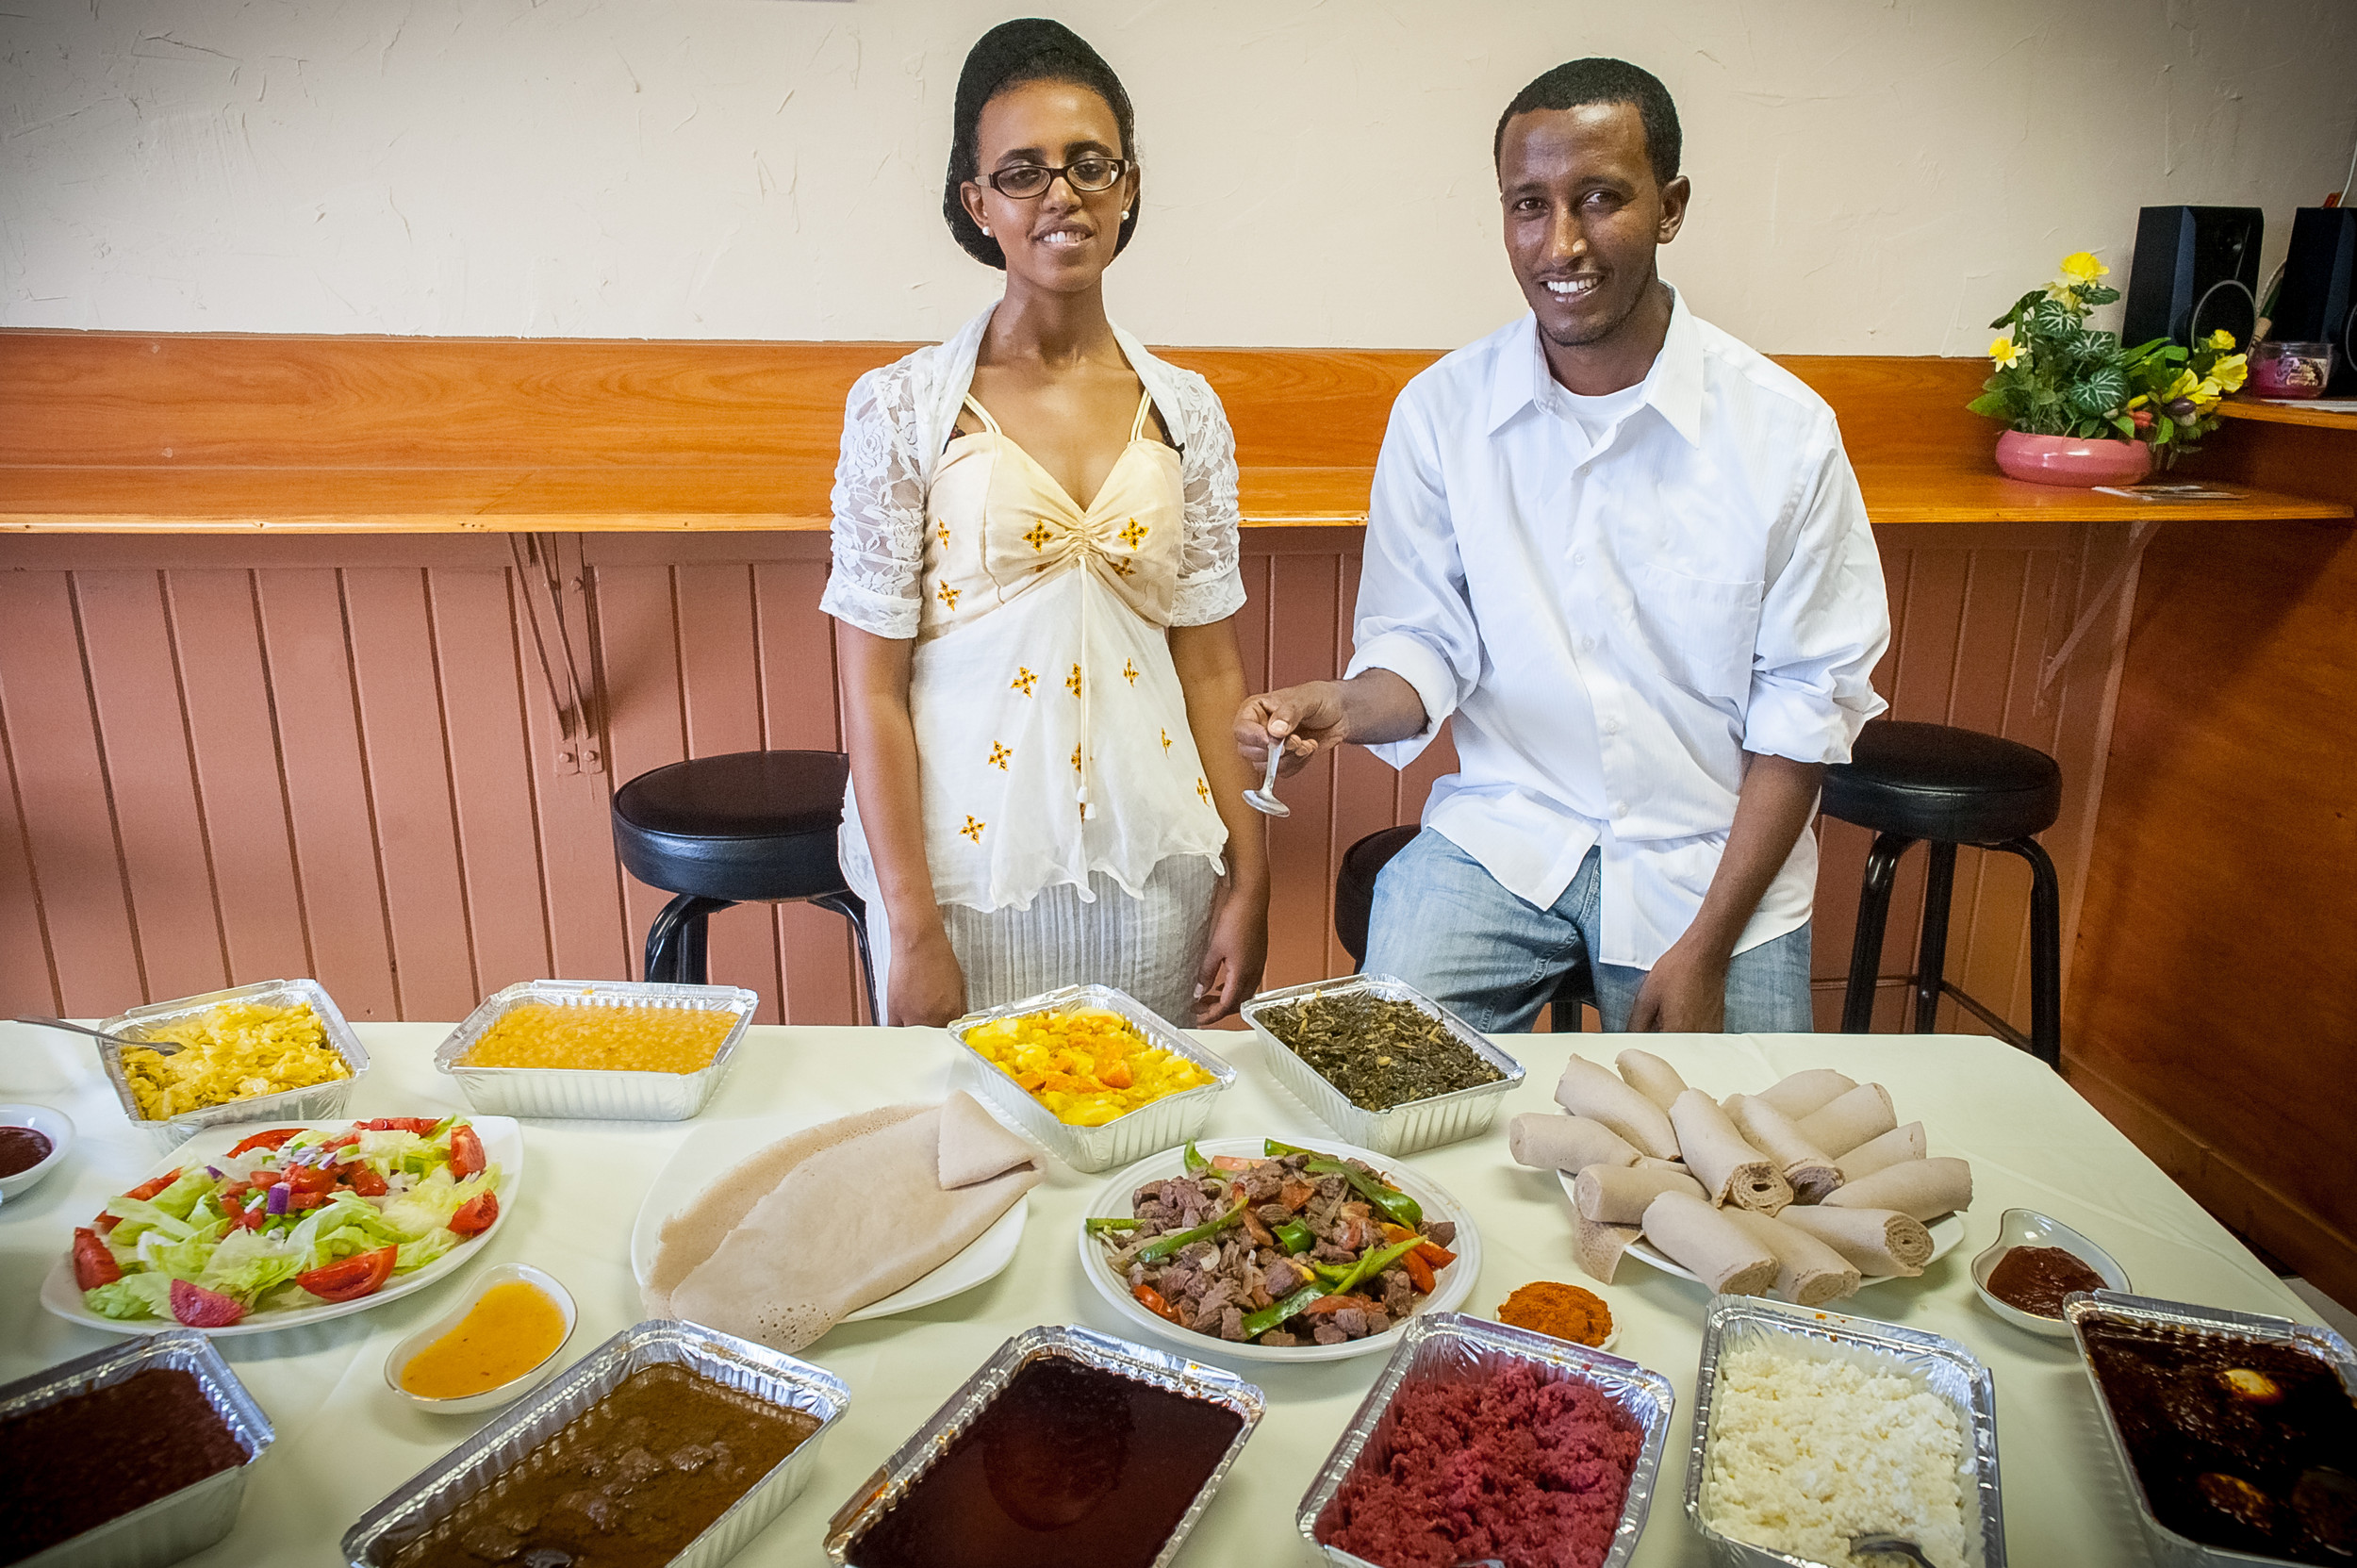 At Nile Ethiopian, family-style platters are served with an oversized spongy, thin, crepe-like flatbread called injera, used to pinch up a scoop of food.